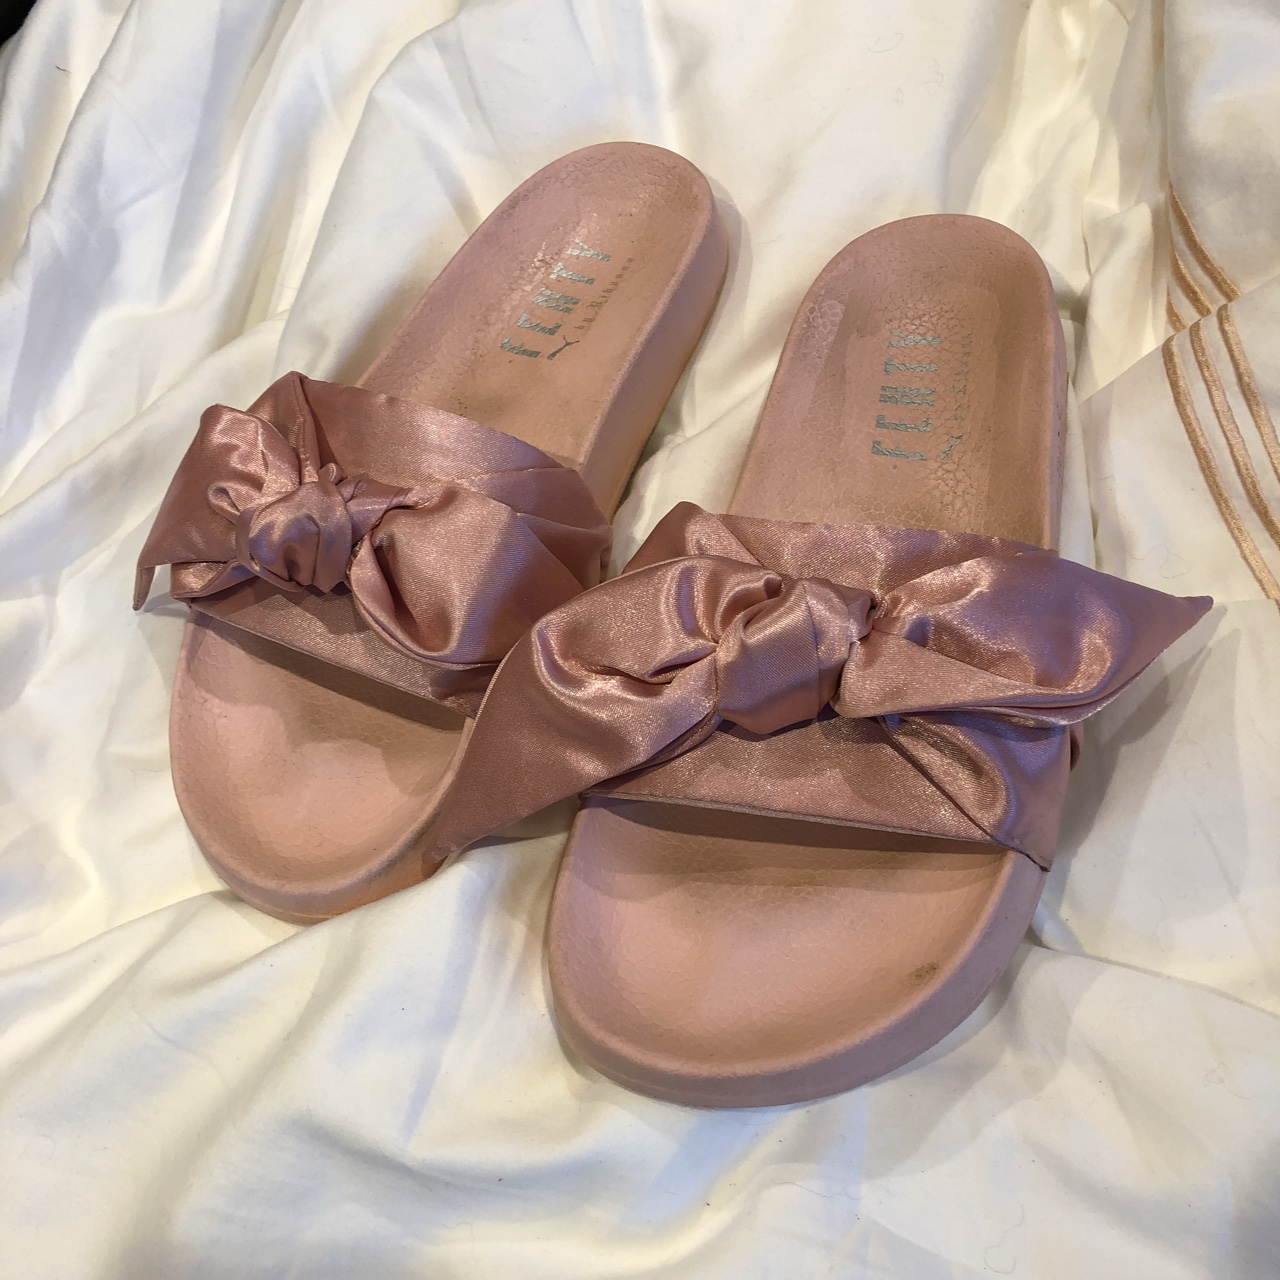 half off eafee c0e9c Fenty Puma pink satin bow slides. These are so cute... - Depop